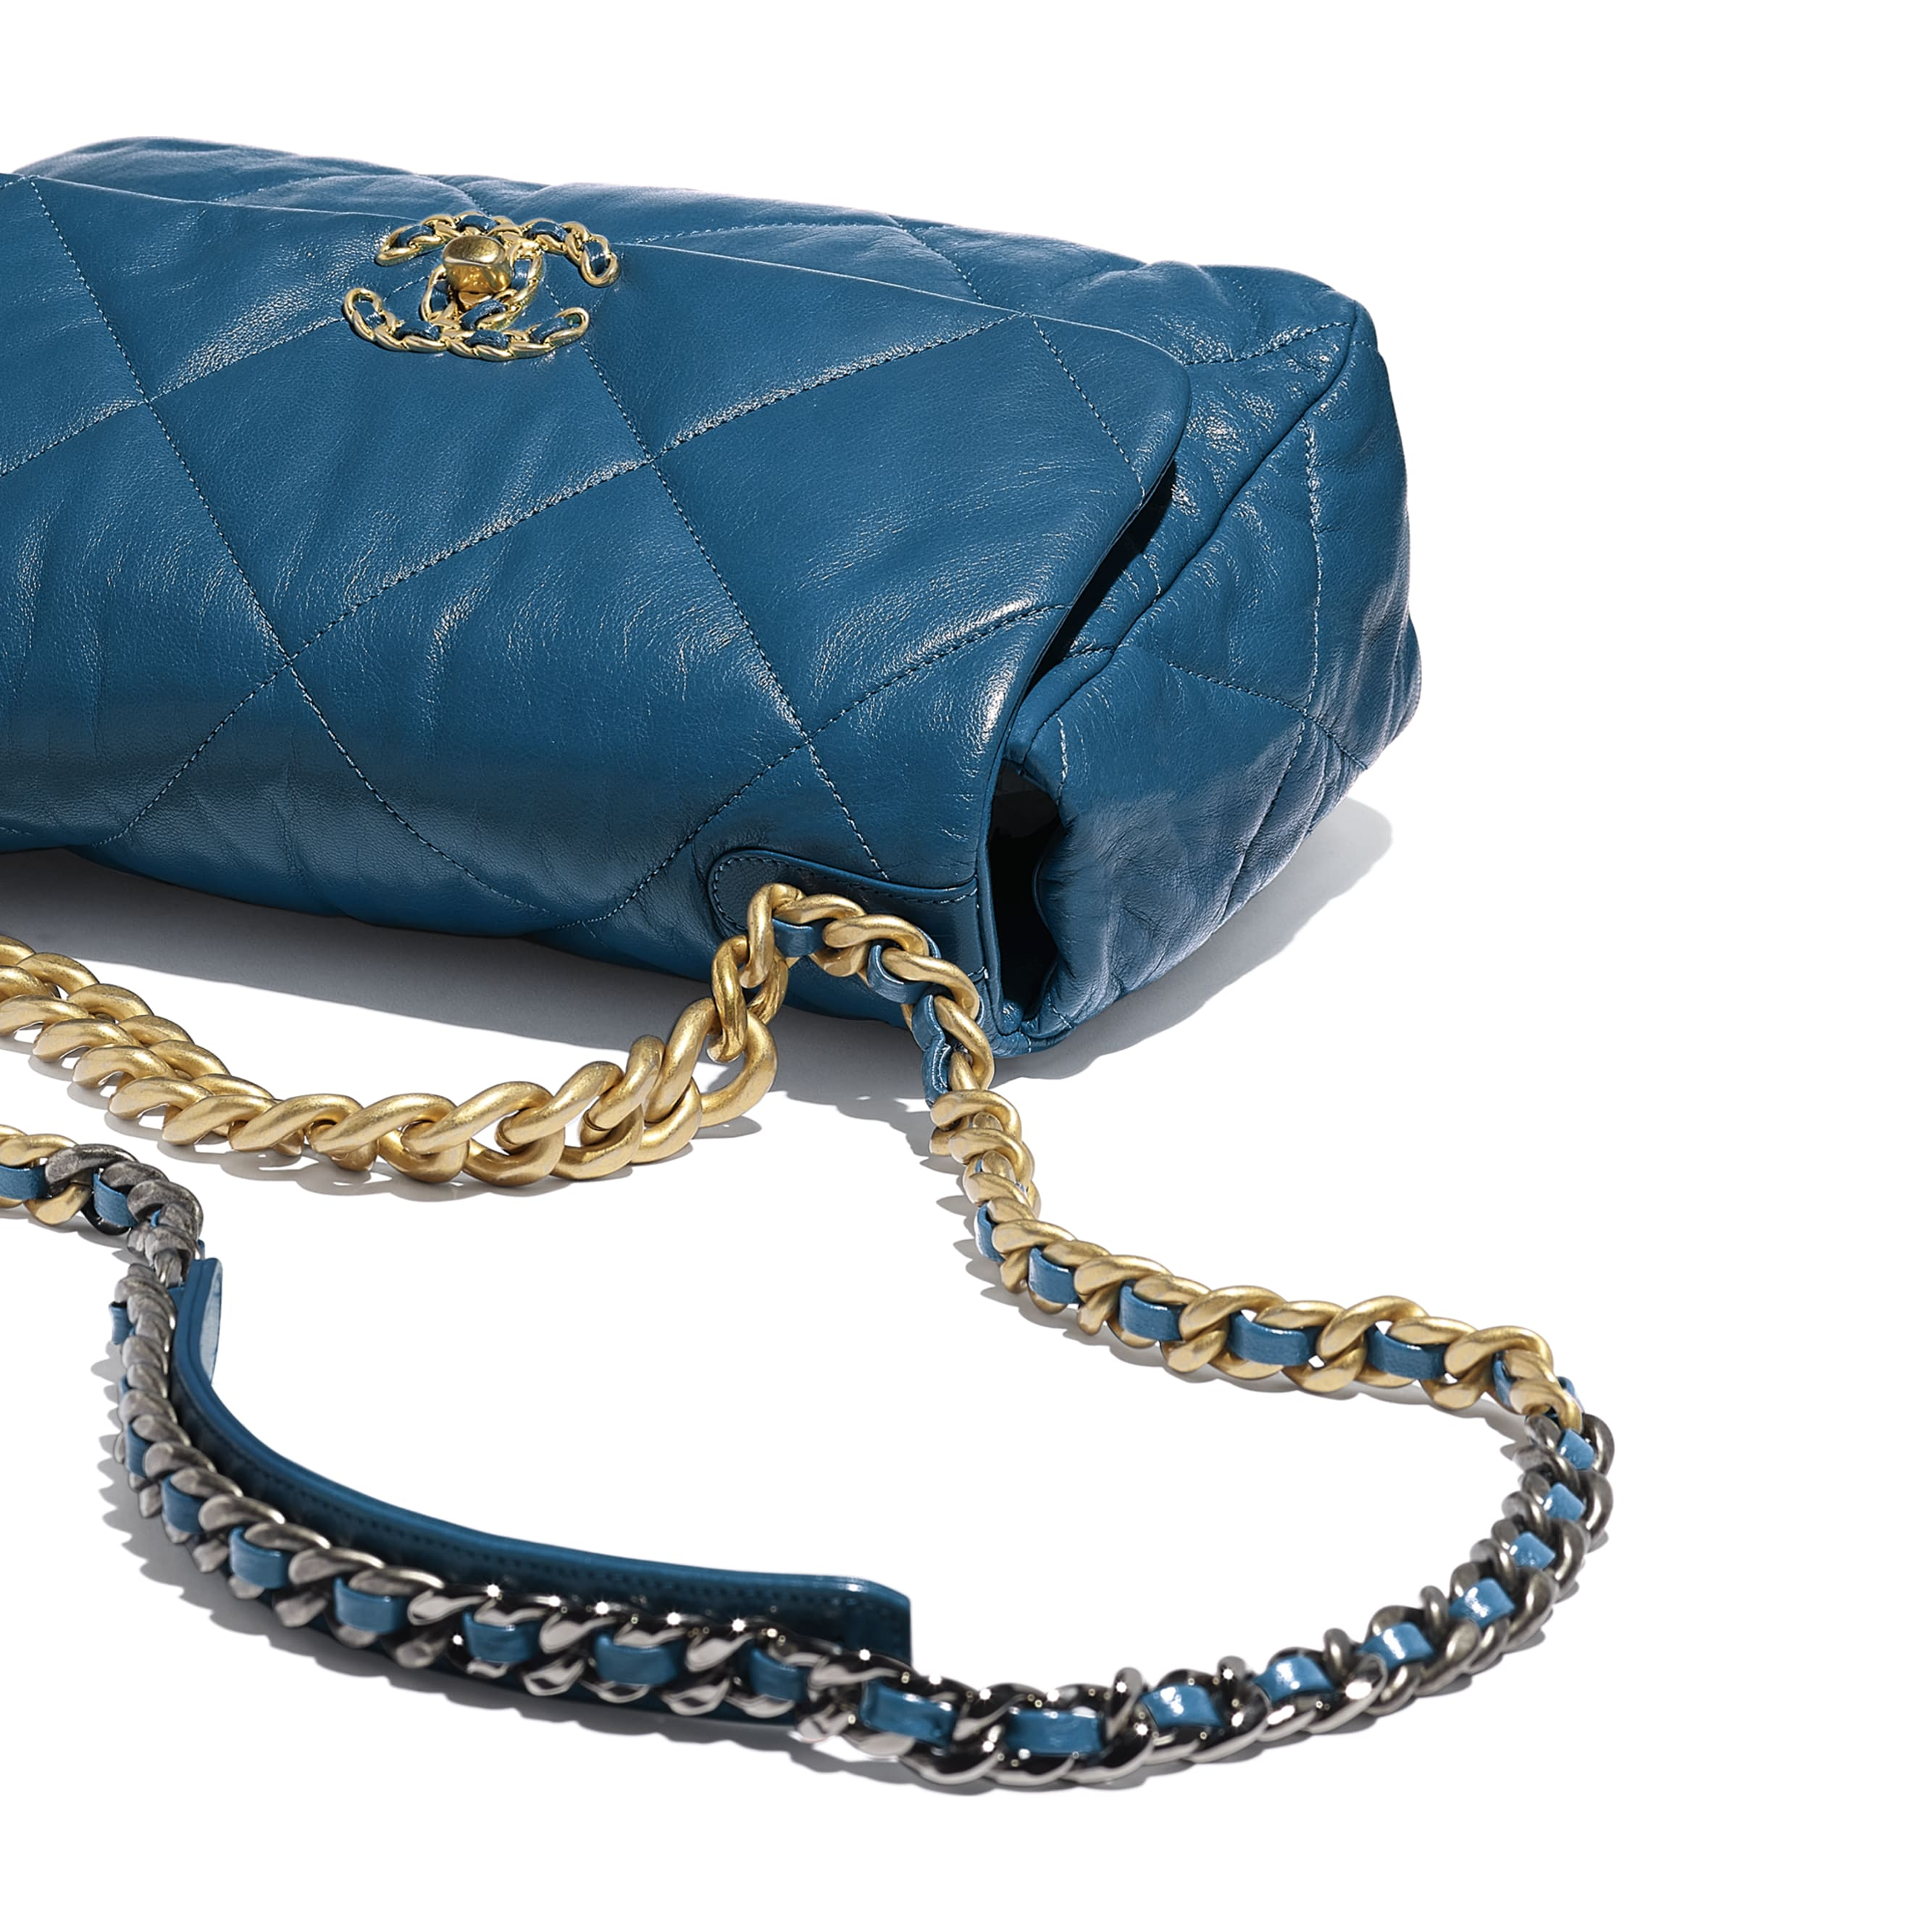 CHANEL 19 Large Flap Bag - Turquoise - Goatskin, Gold-Tone, Silver-Tone & Ruthenium-Finish Metal - Extra view - see standard sized version